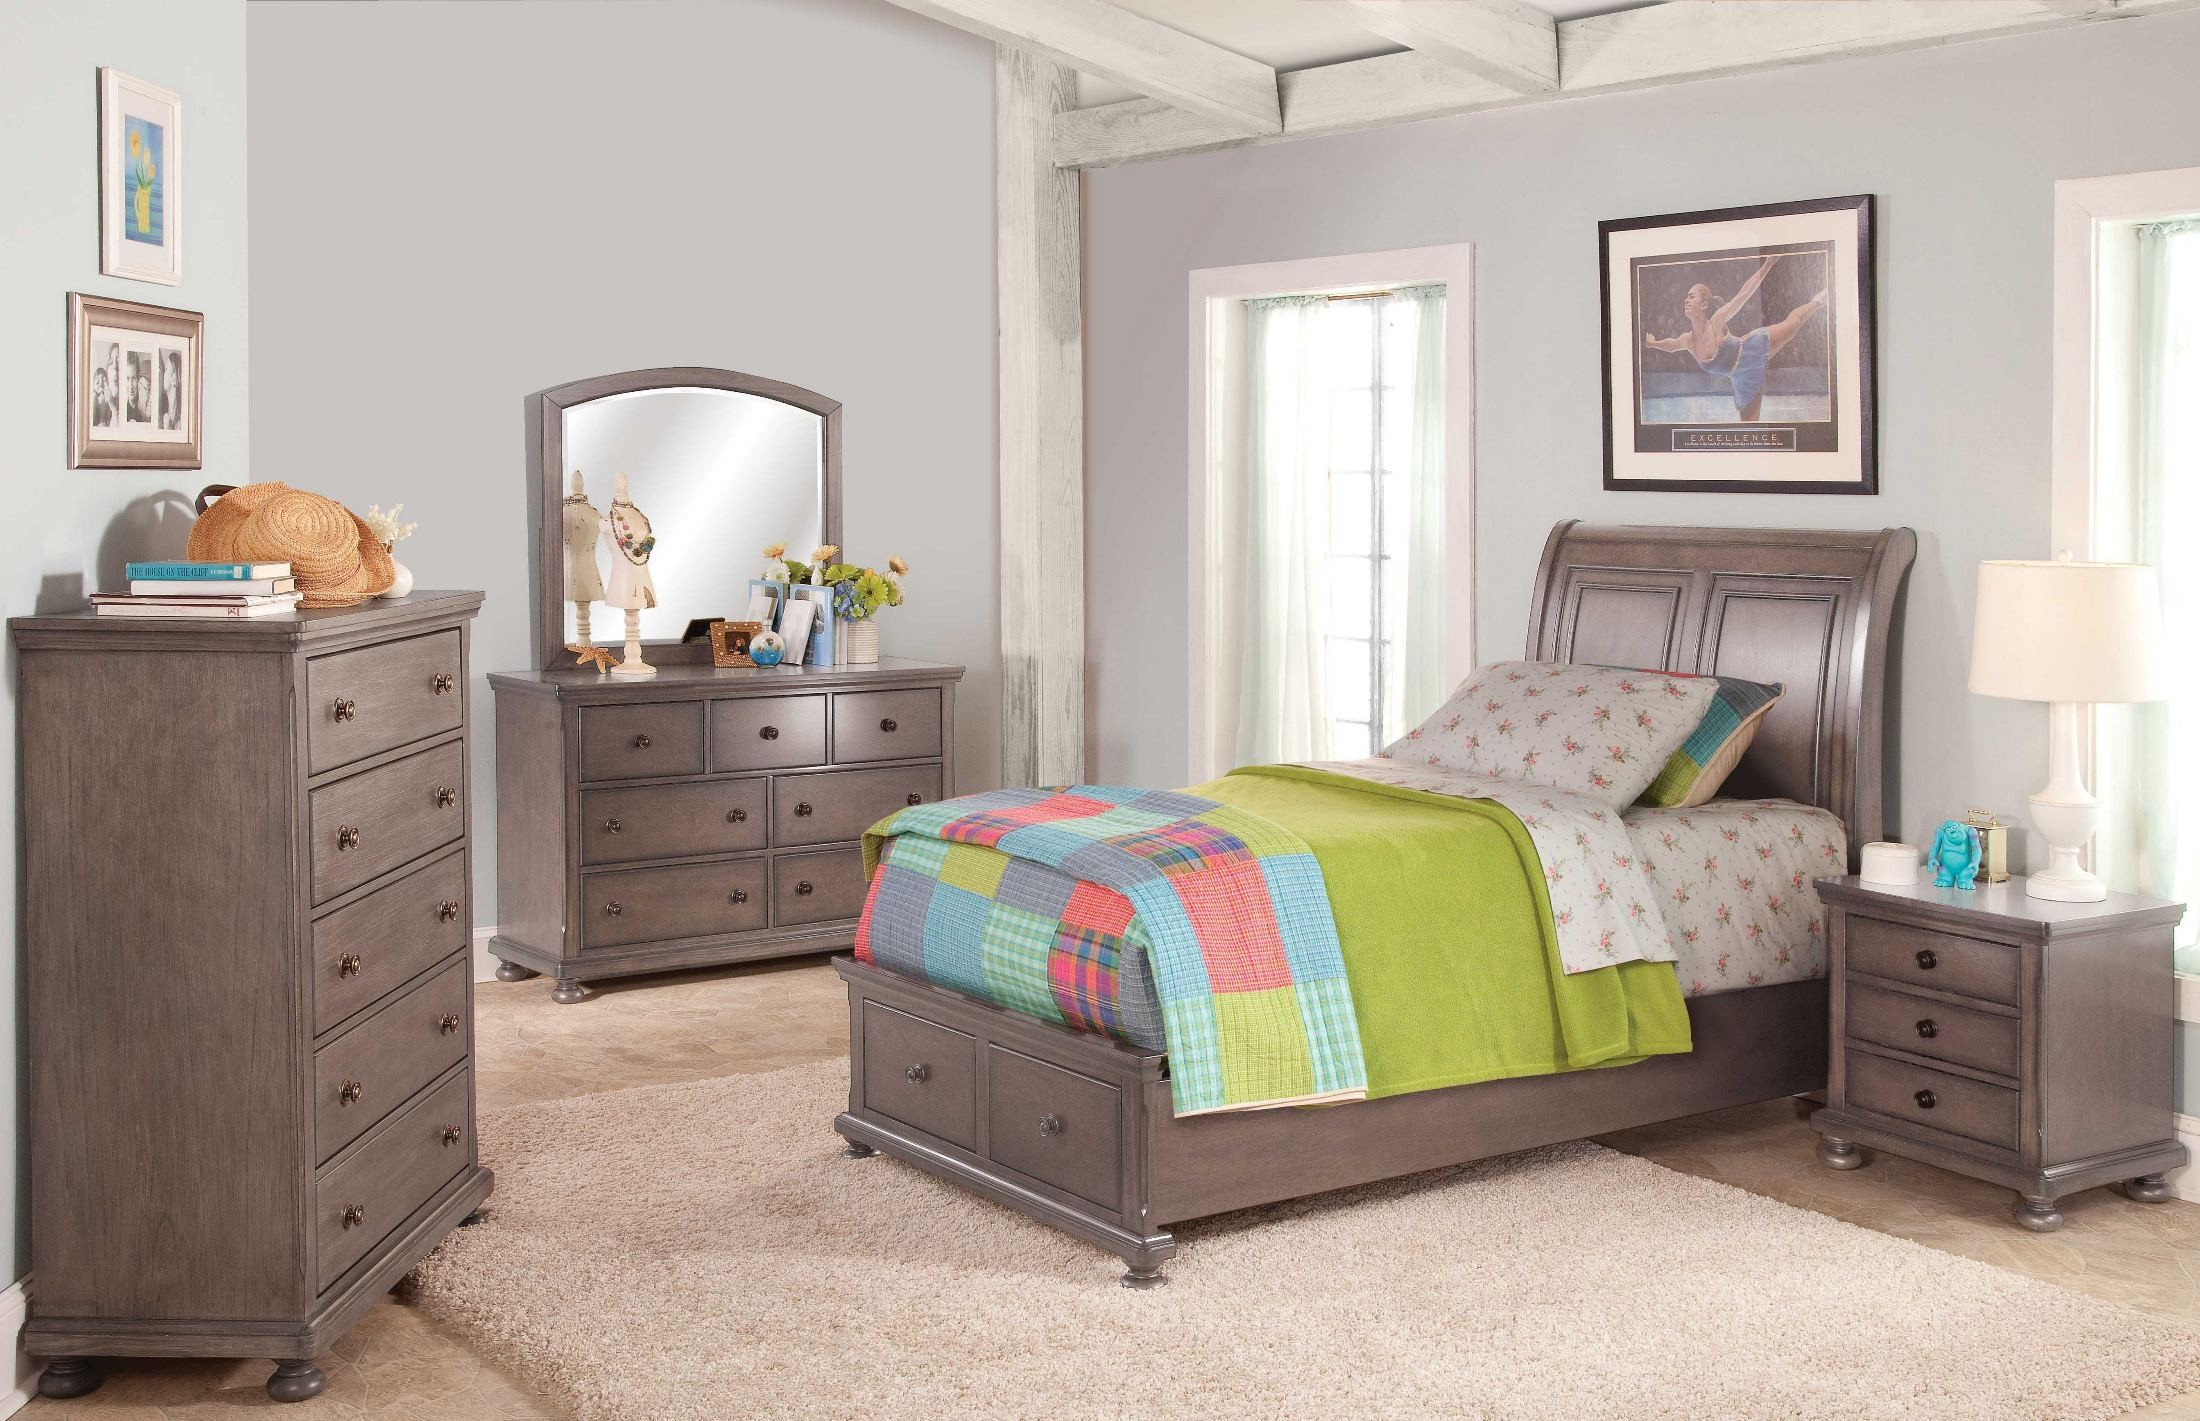 Allegra youth pewter youth sleigh storage bedroom set from new classic coleman furniture - Juvenile bedroom sets ...